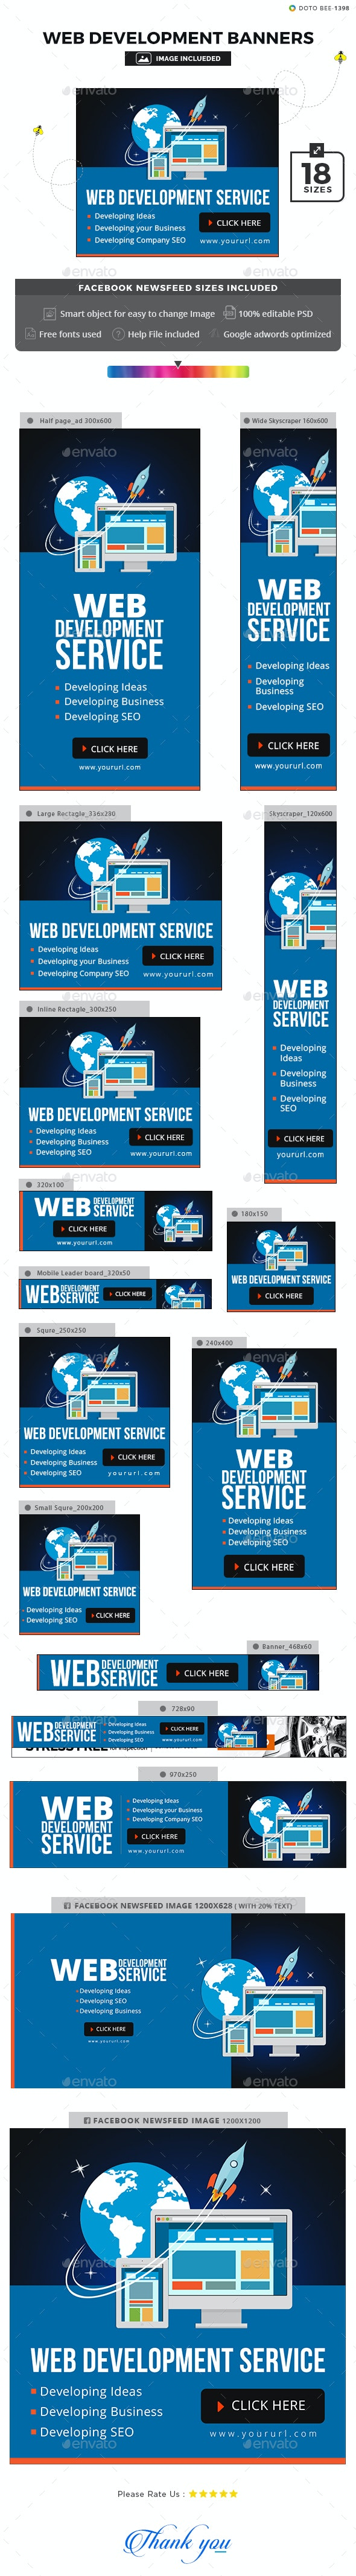 Web Development Ad Banners - Images Included - Banners & Ads Web Elements